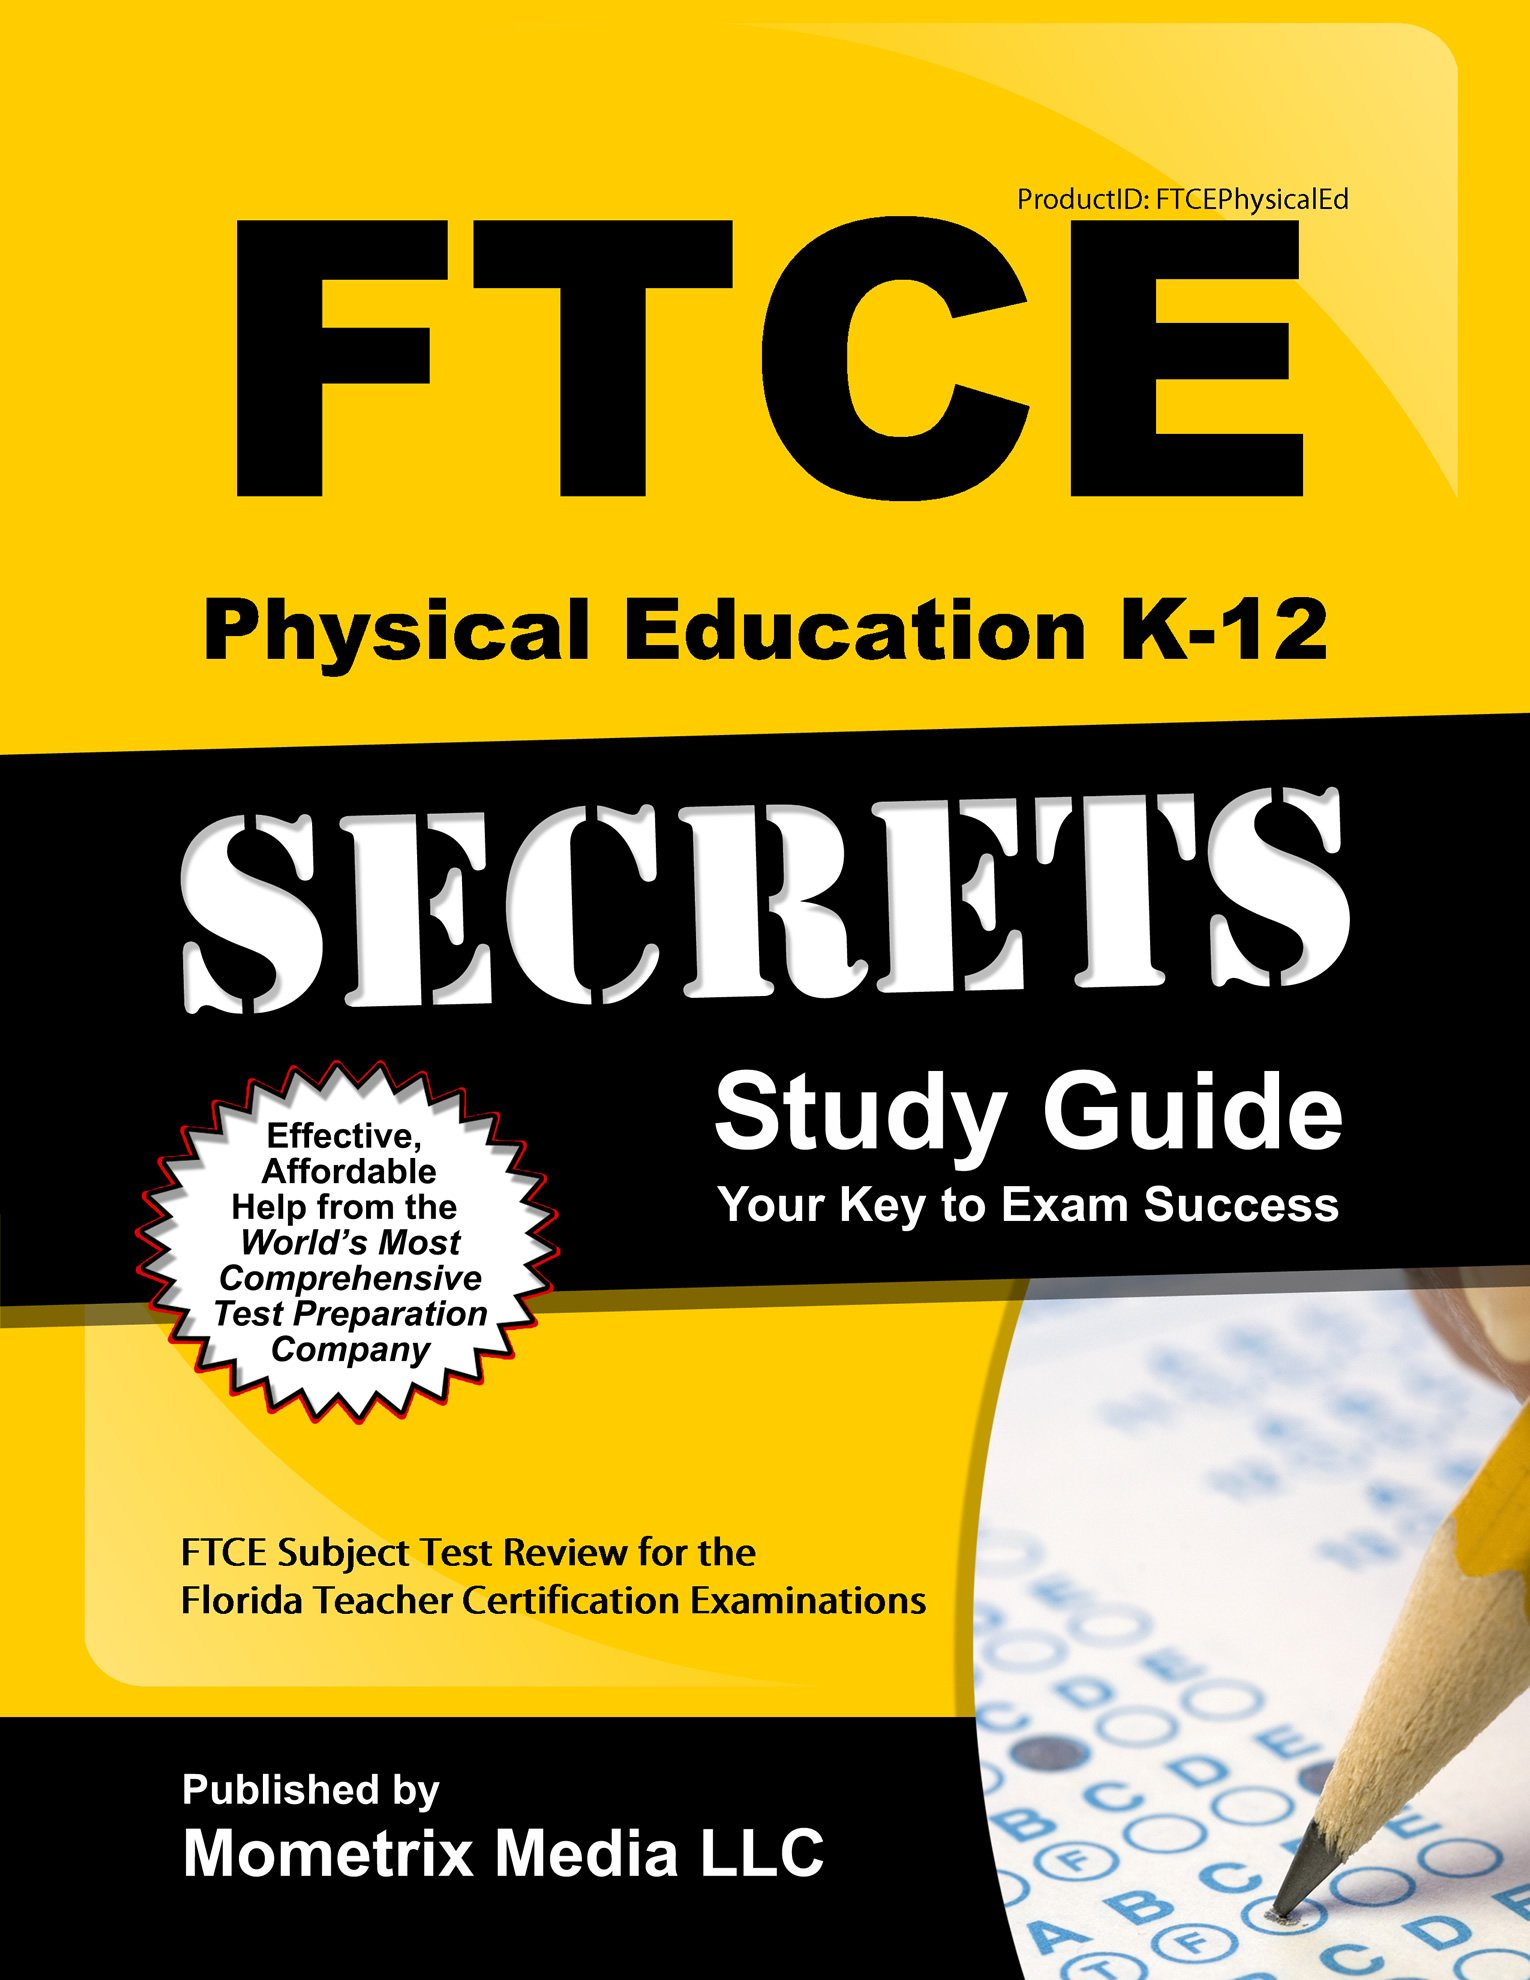 Ftce physical education k 12 secrets study guide ftce subject ftce physical education k 12 secrets study guide ftce subject test review for the florida teacher certification examinations ftce subject exam secrets 1betcityfo Image collections